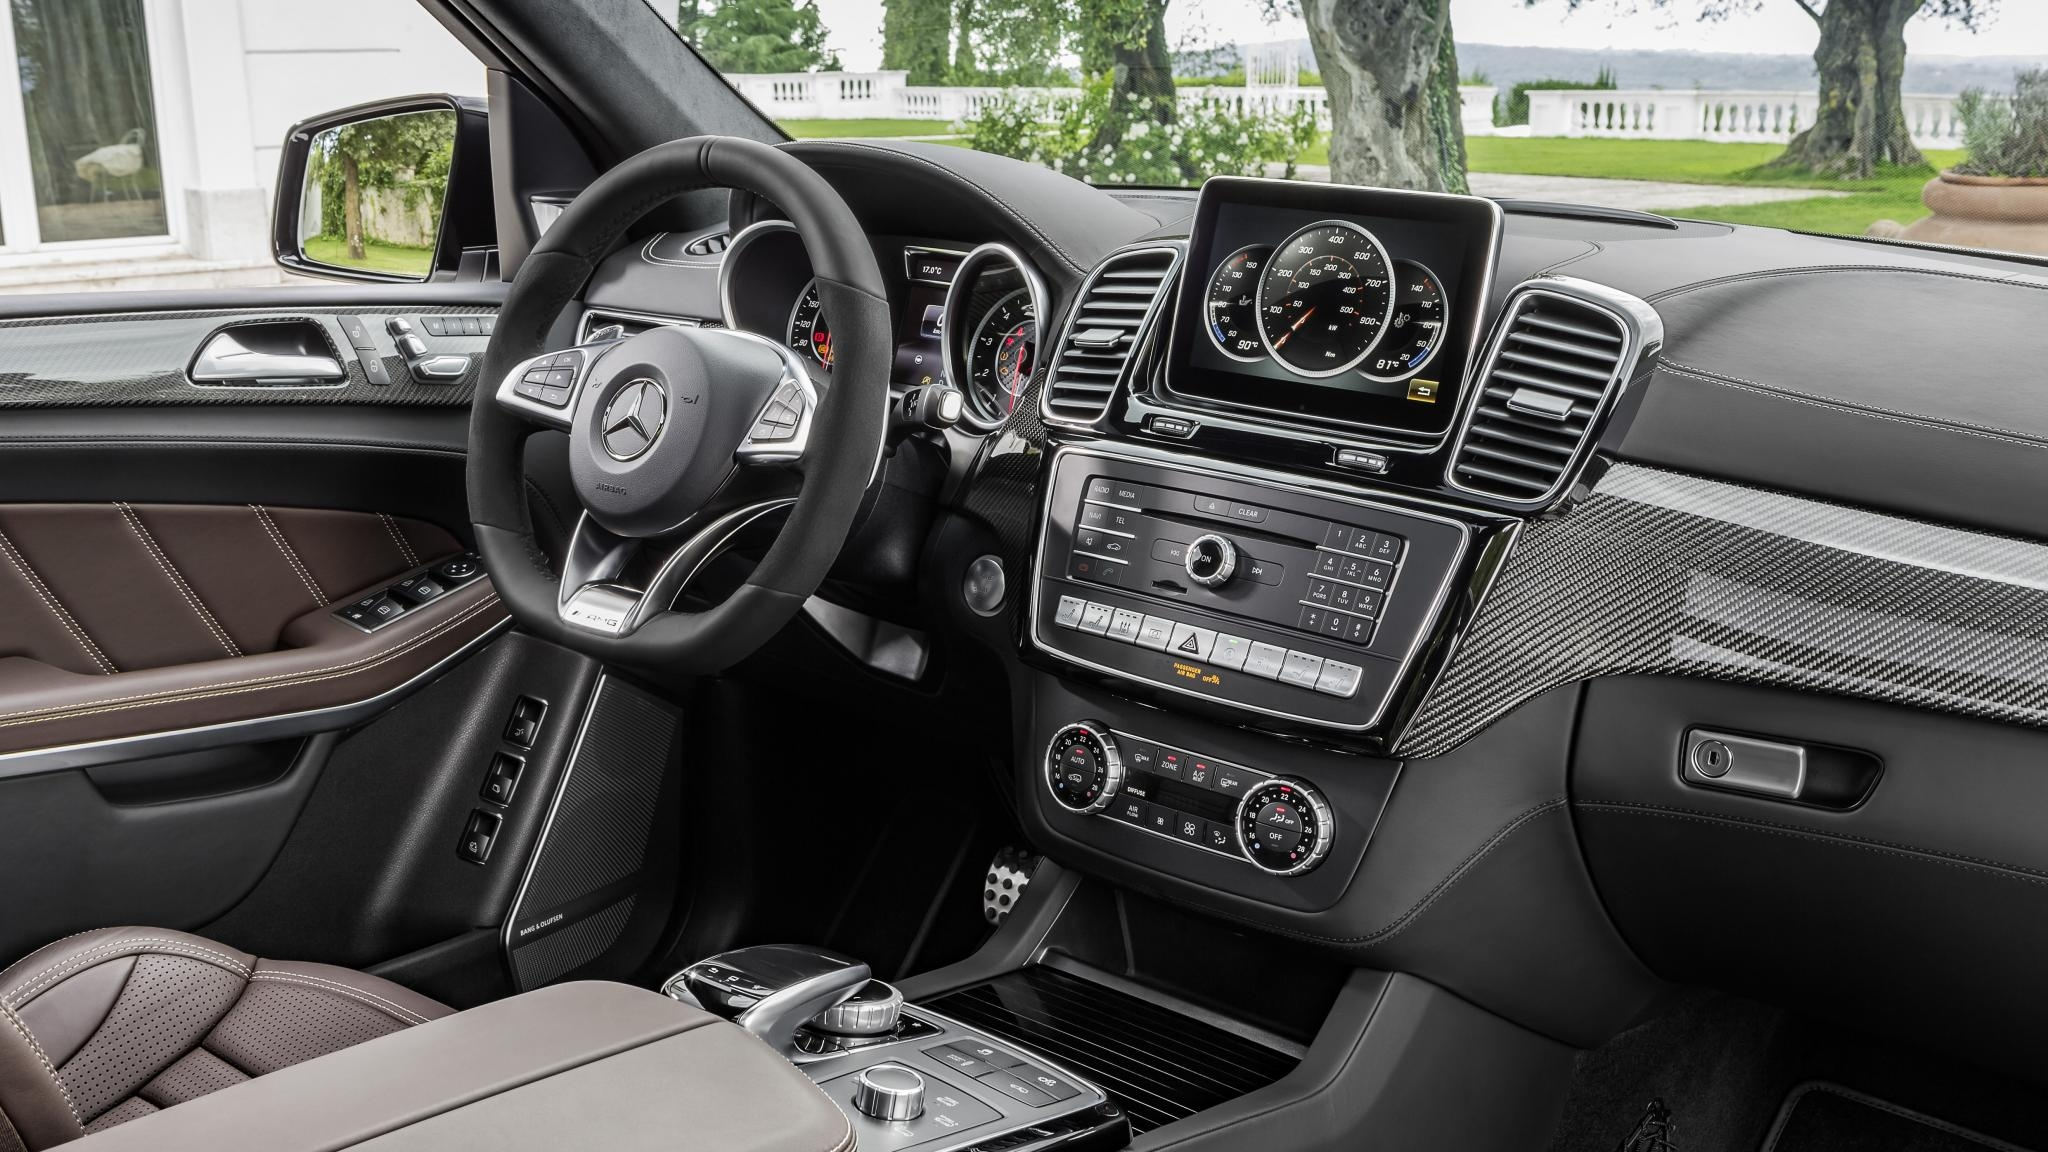 Mercedes GLS 63 AMG in Munich Hire, Car Rental - PD-Cars.com